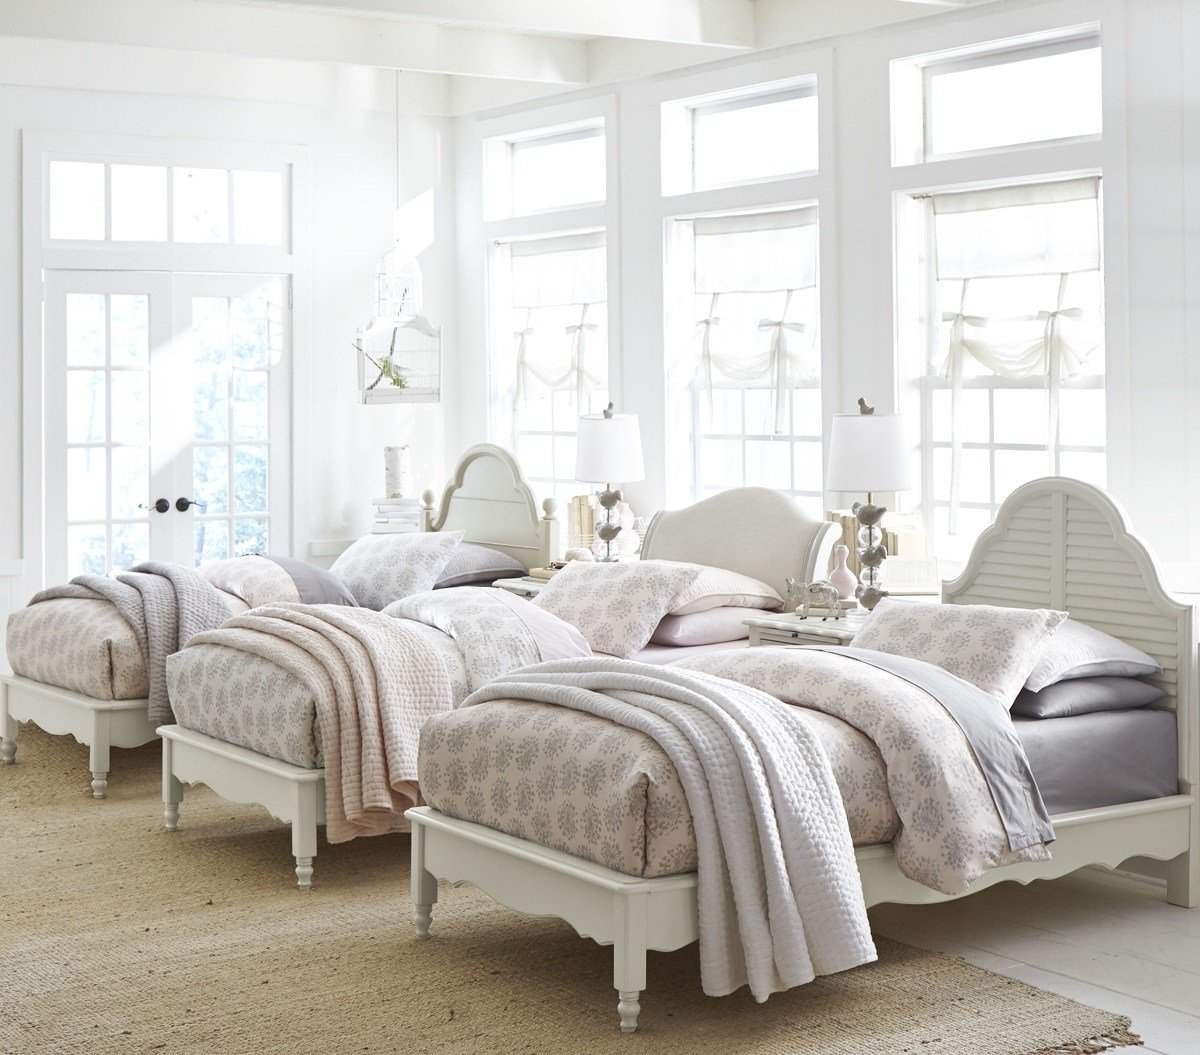 Best Wendy Bellissimo Inspirations Furniture Collection Wendy Bellissimo With Pictures